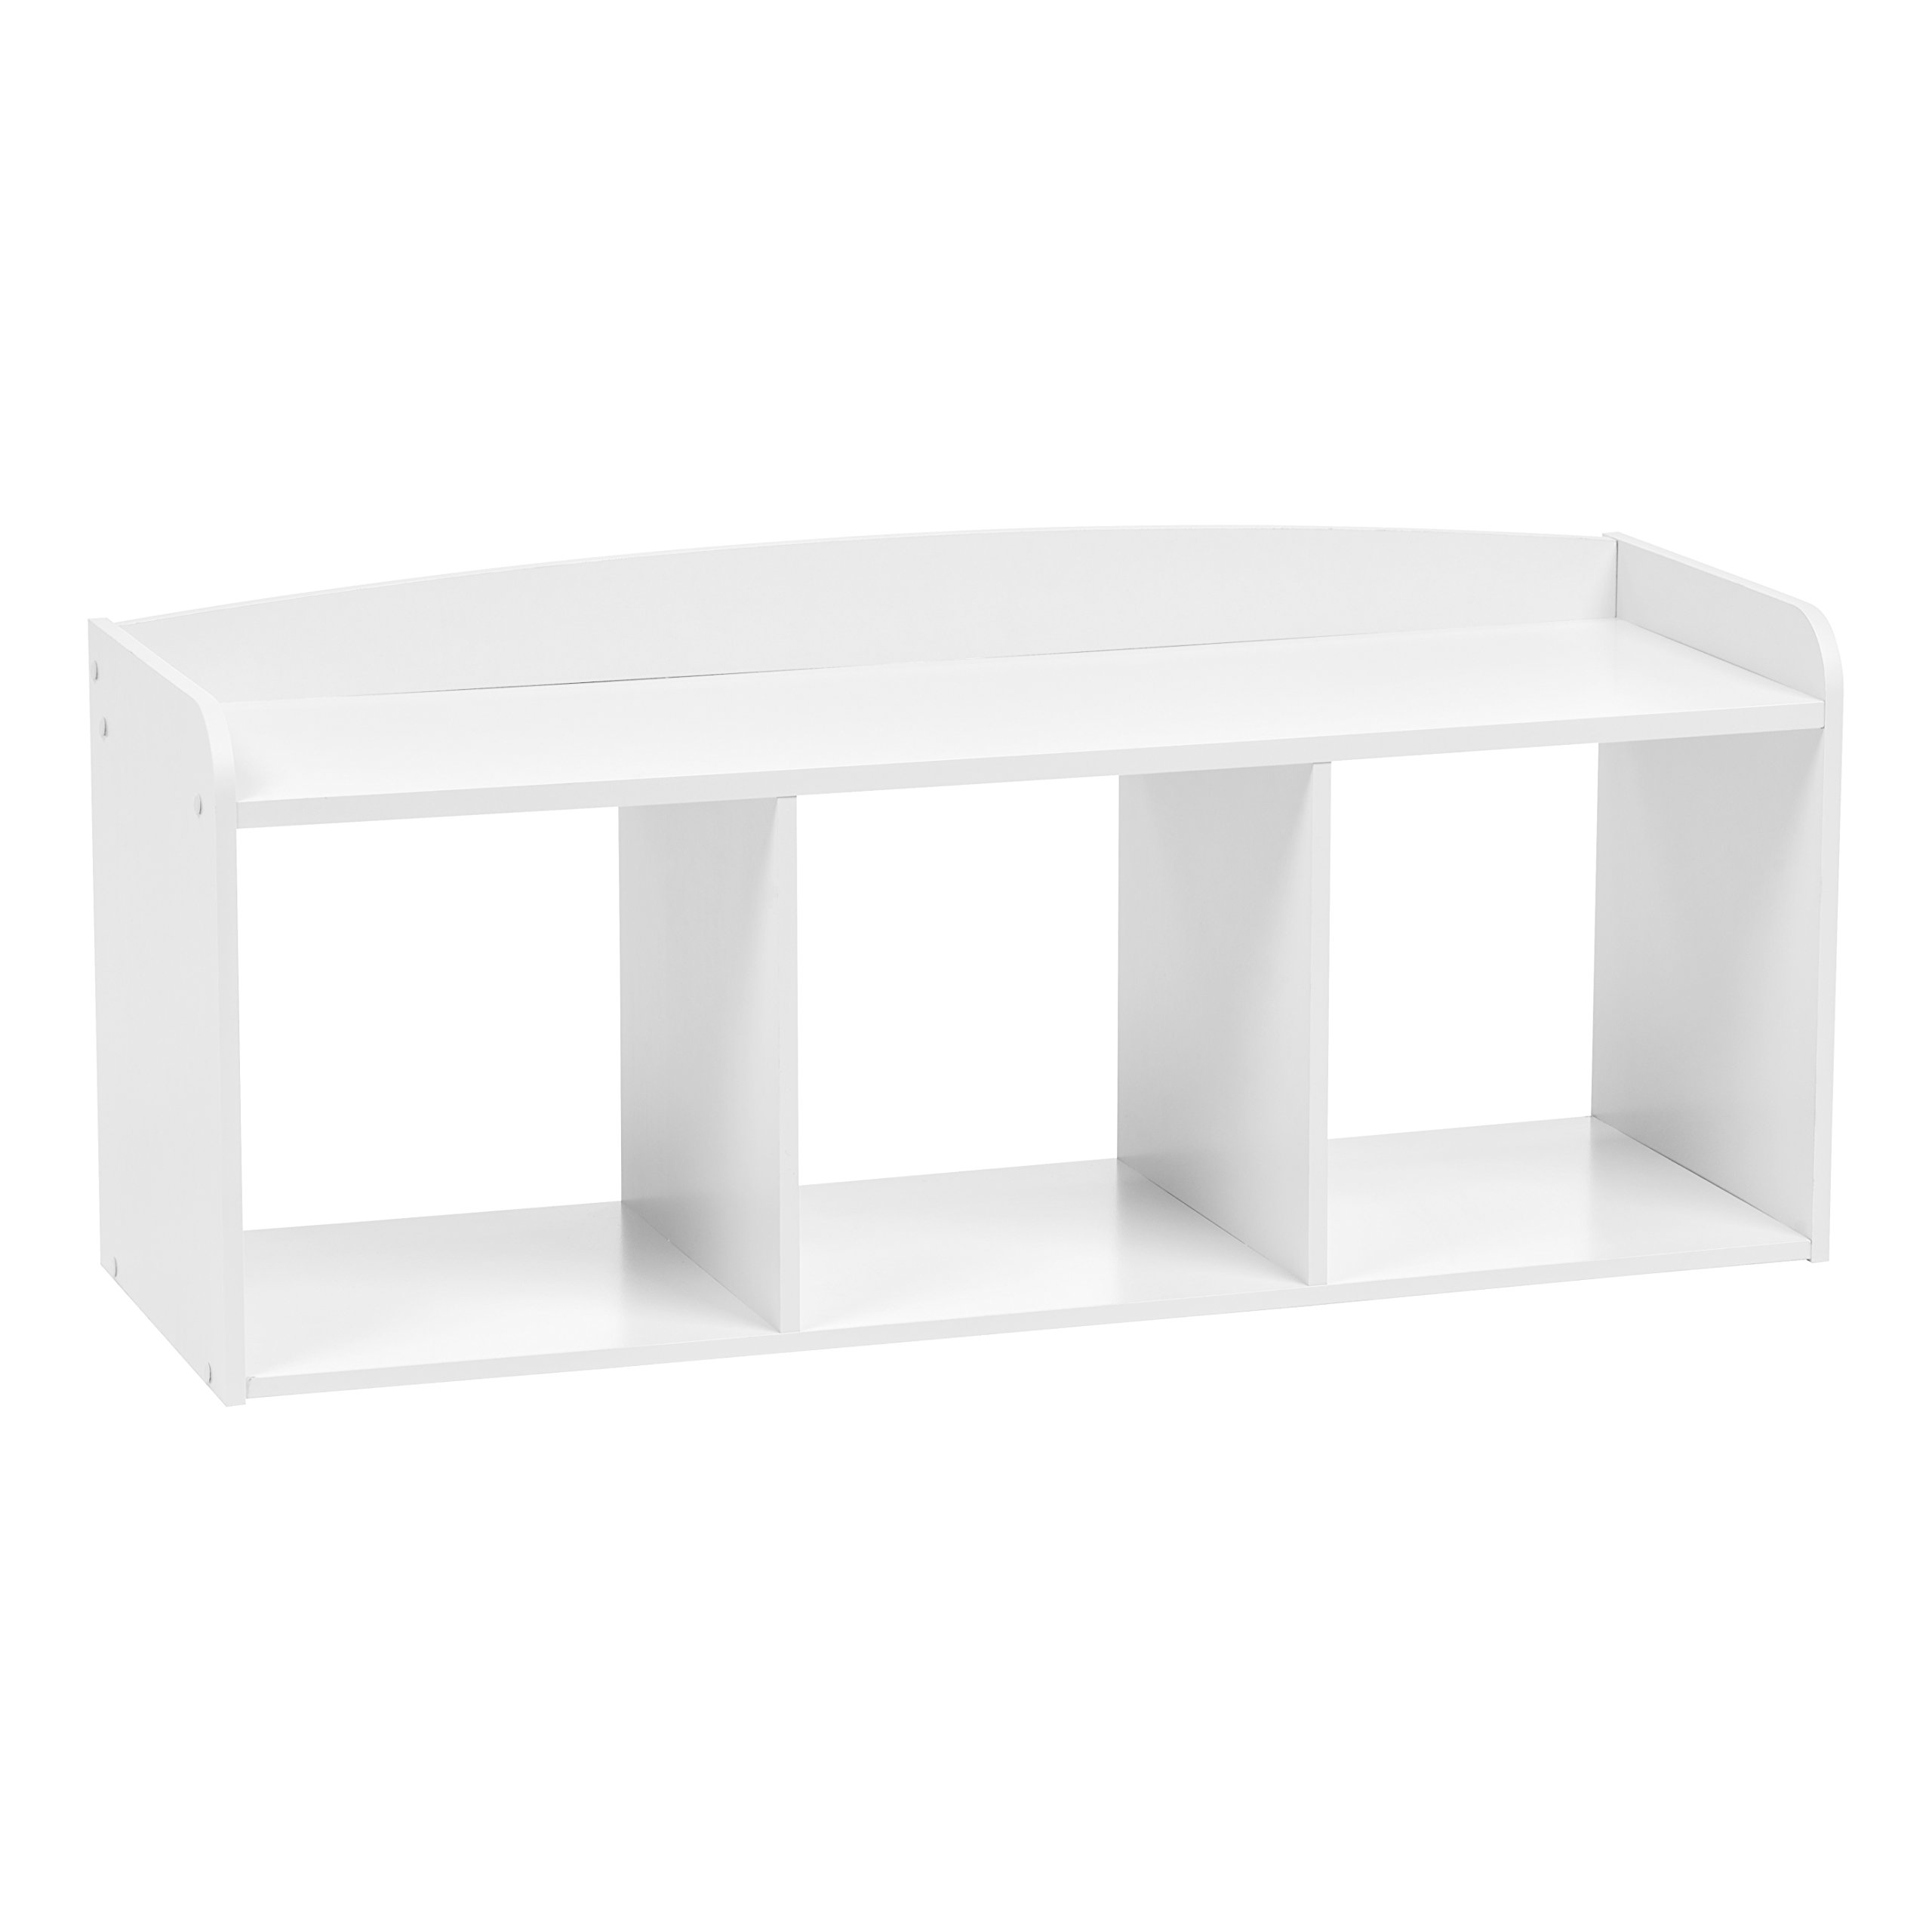 IRIS USA, Inc. 595904 KBN-3 Kid's Wooden Storage Bench, White by IRIS USA, Inc.